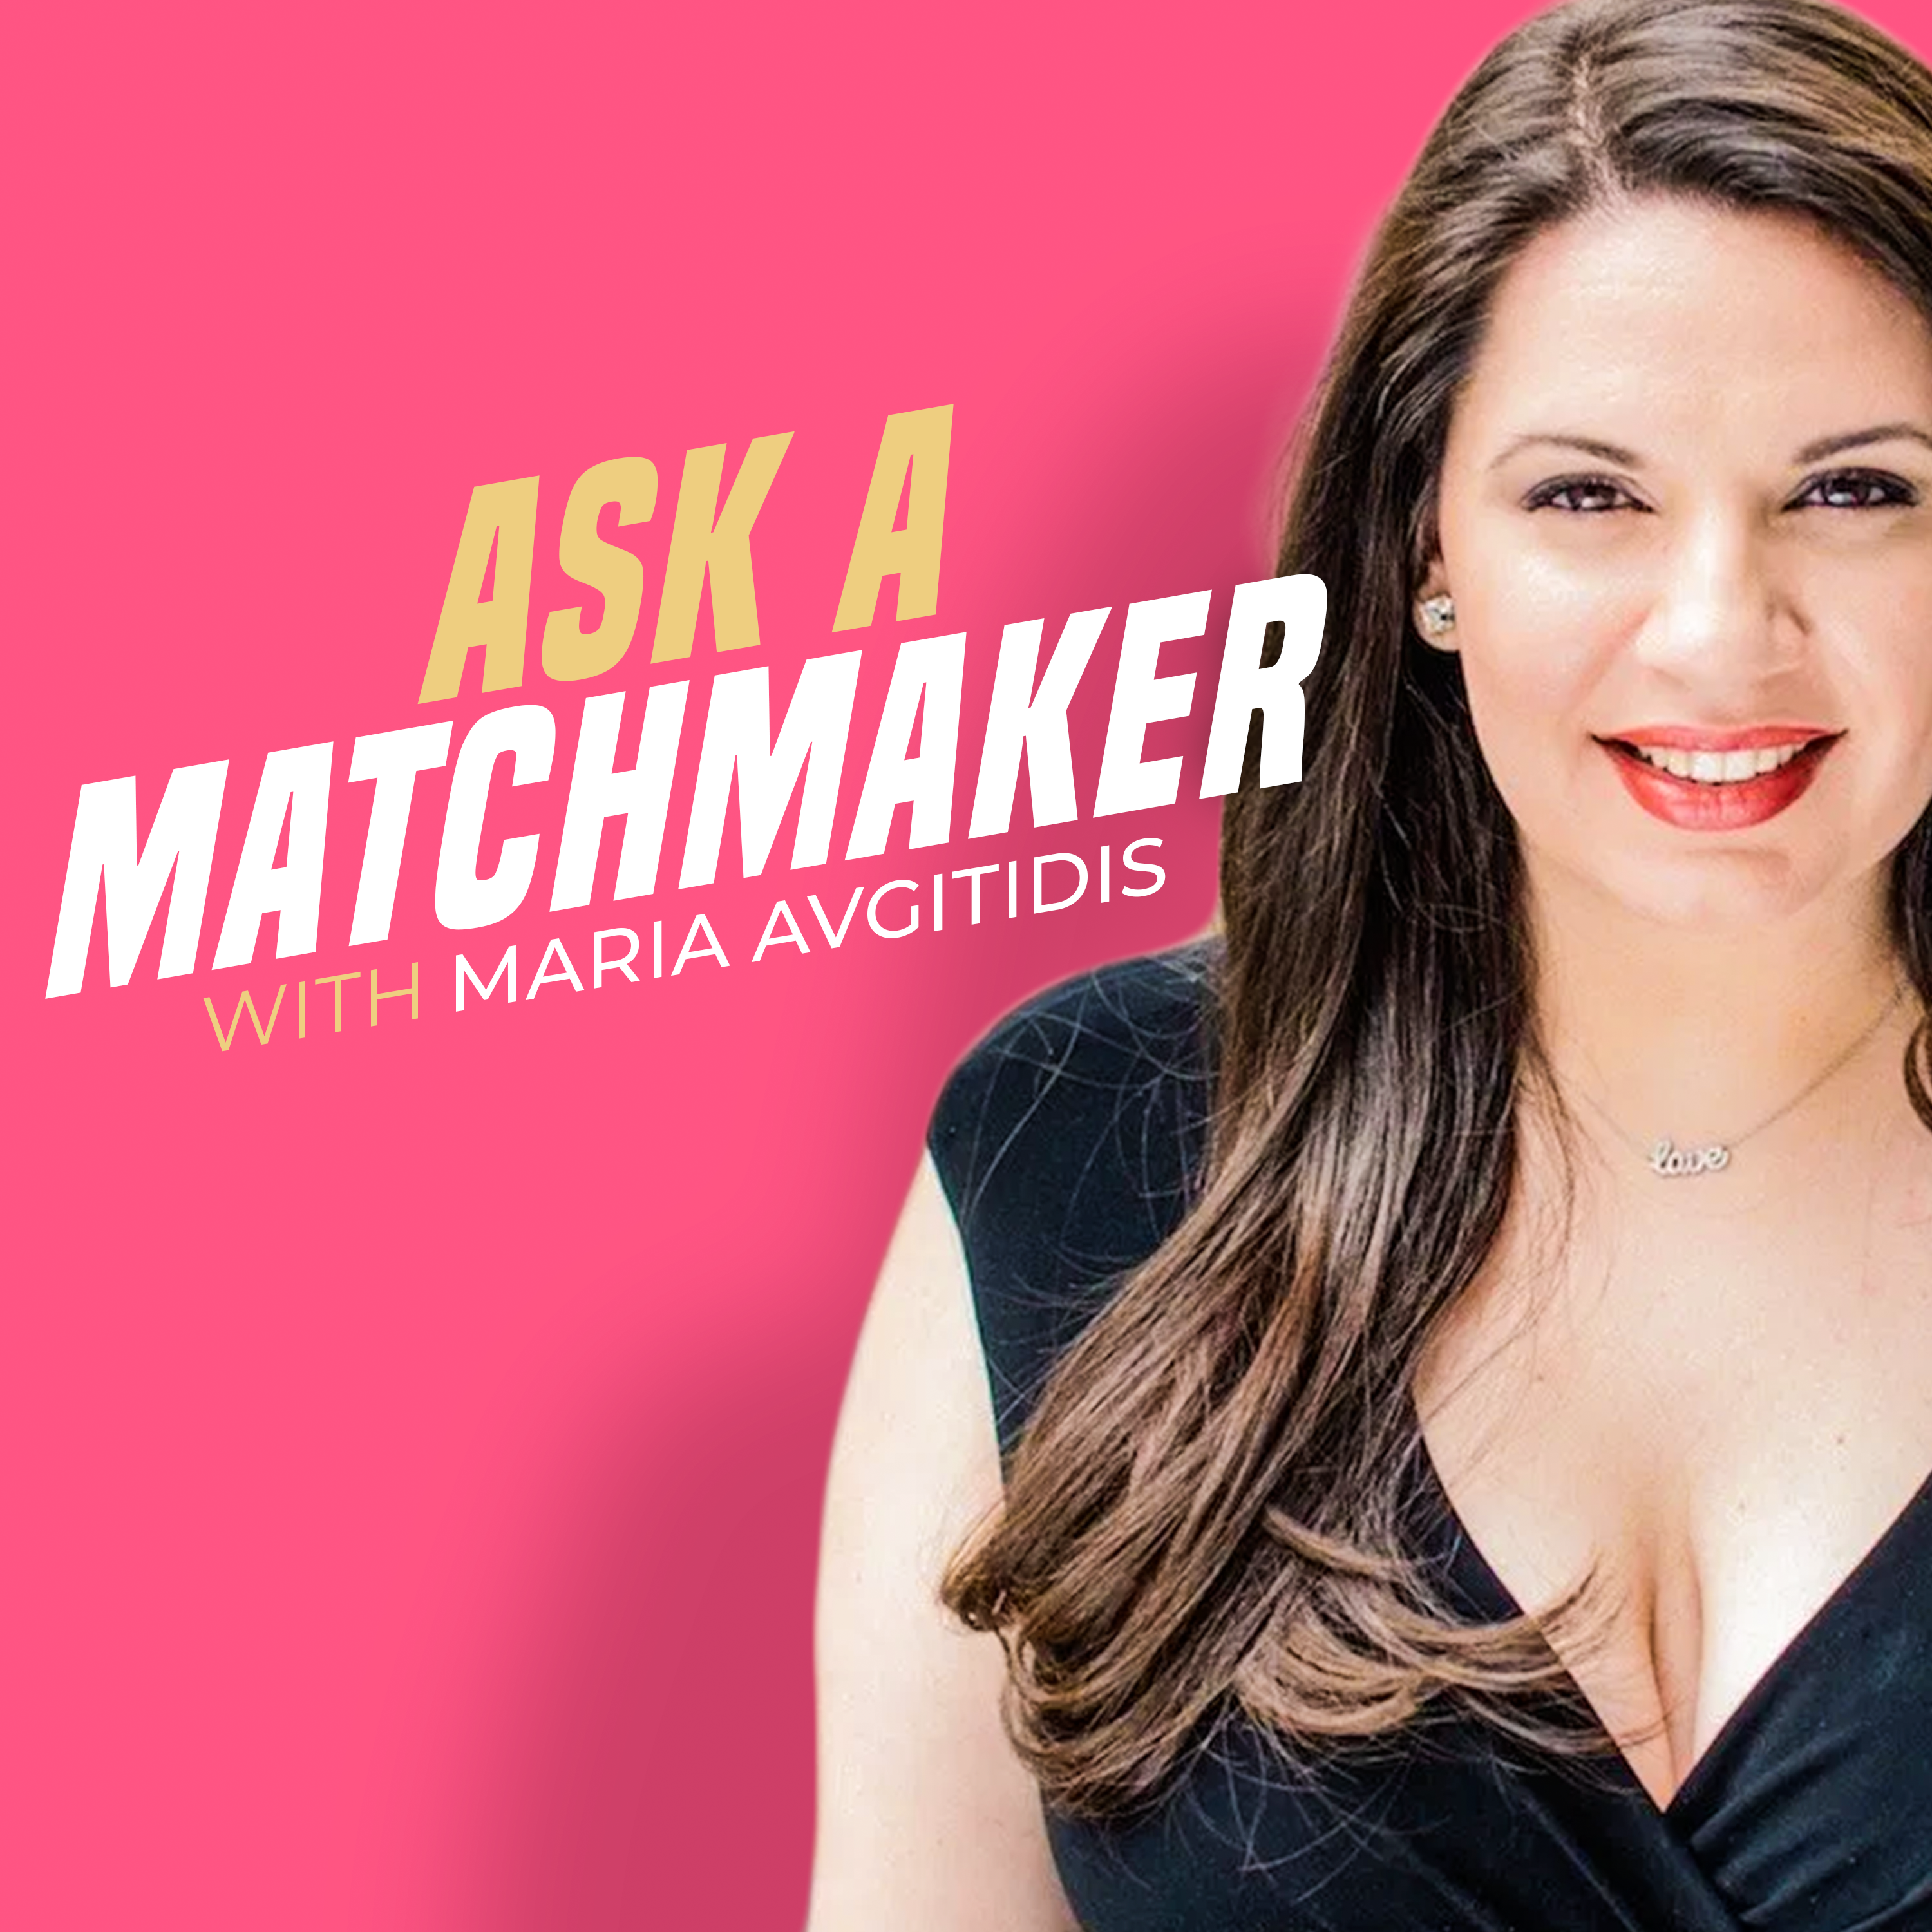 Ask a Matchmaker podcast show image